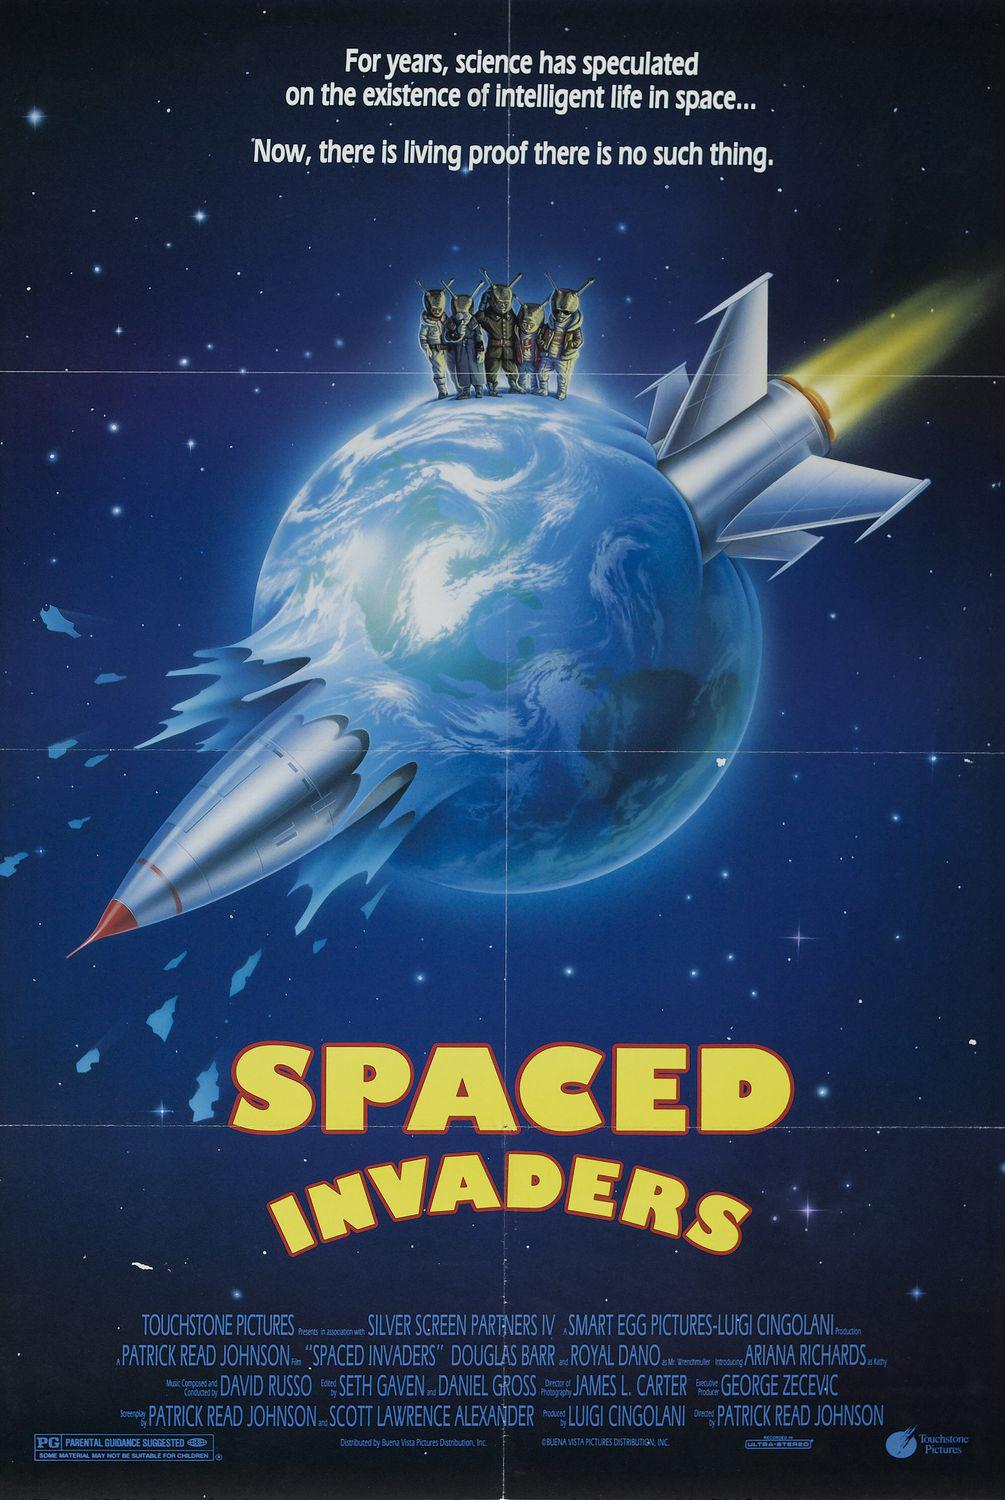 Spaced invaders - funny film - For years, science has speculated on the existence of intelligent life in space. Now, there is living proof there is no such thing. - Patrick Read Johnson film with Douglas Barr, Royal Dano and Ariana Richards